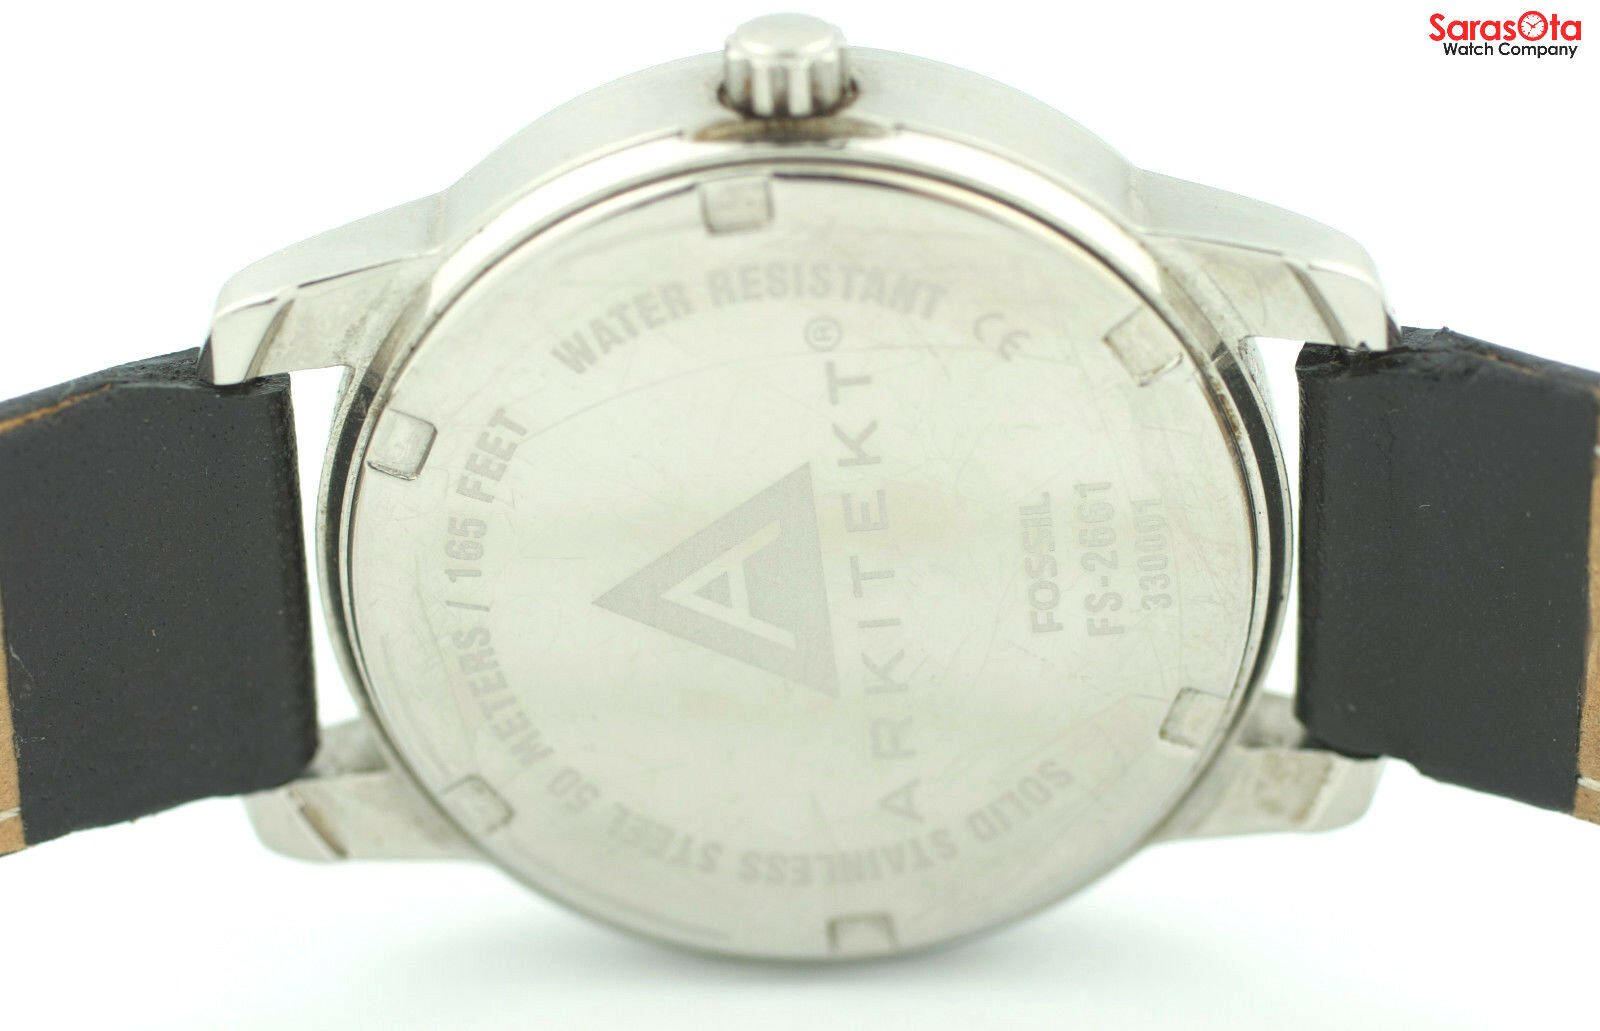 Fossil FS 2661 White Dial Stainless Steel Black Leather Quartz Womens Watch 121773030002 7